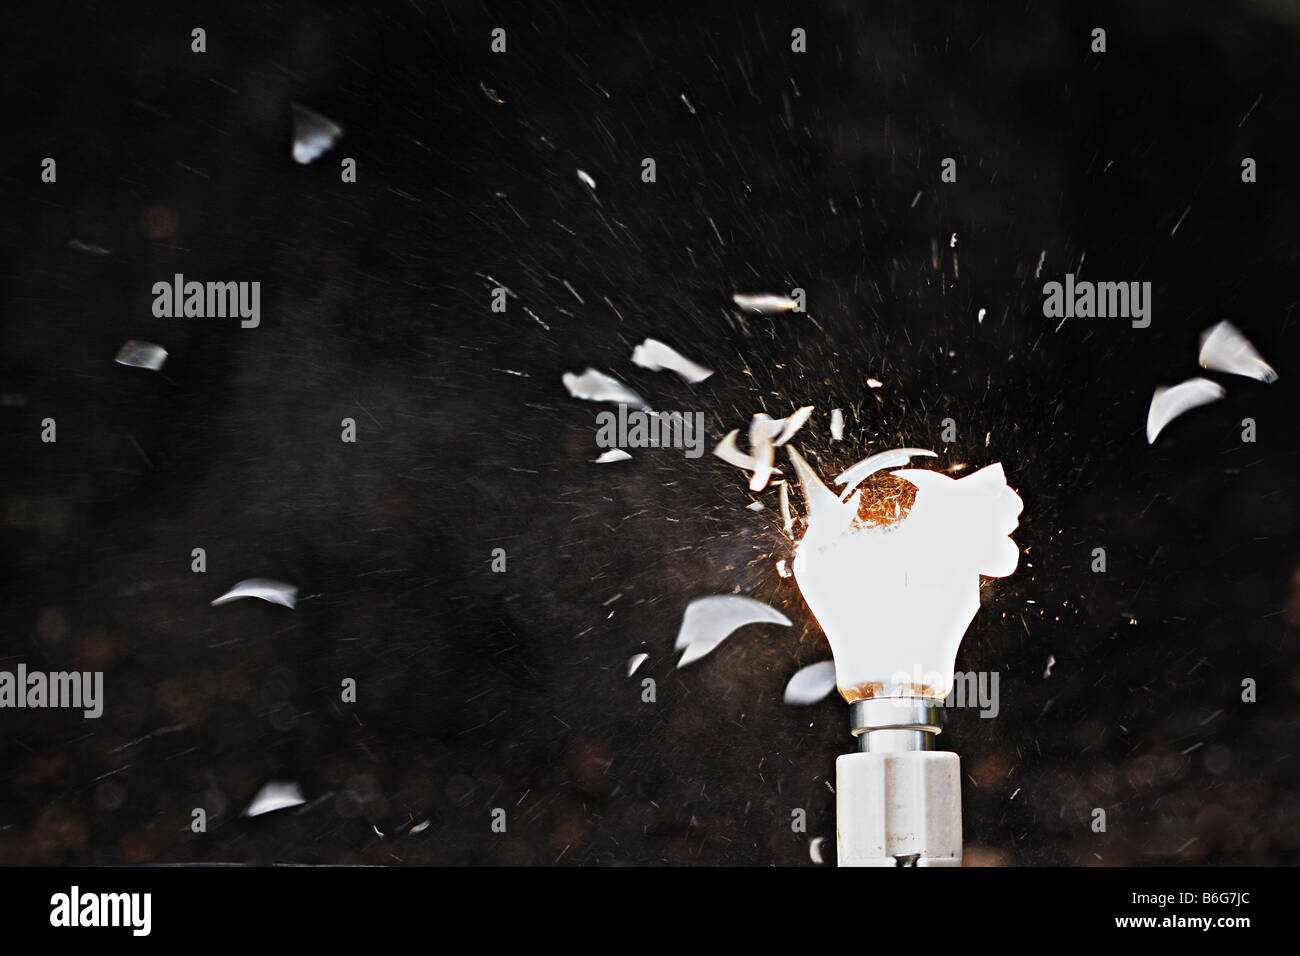 Exploding light bulb - Stock Image